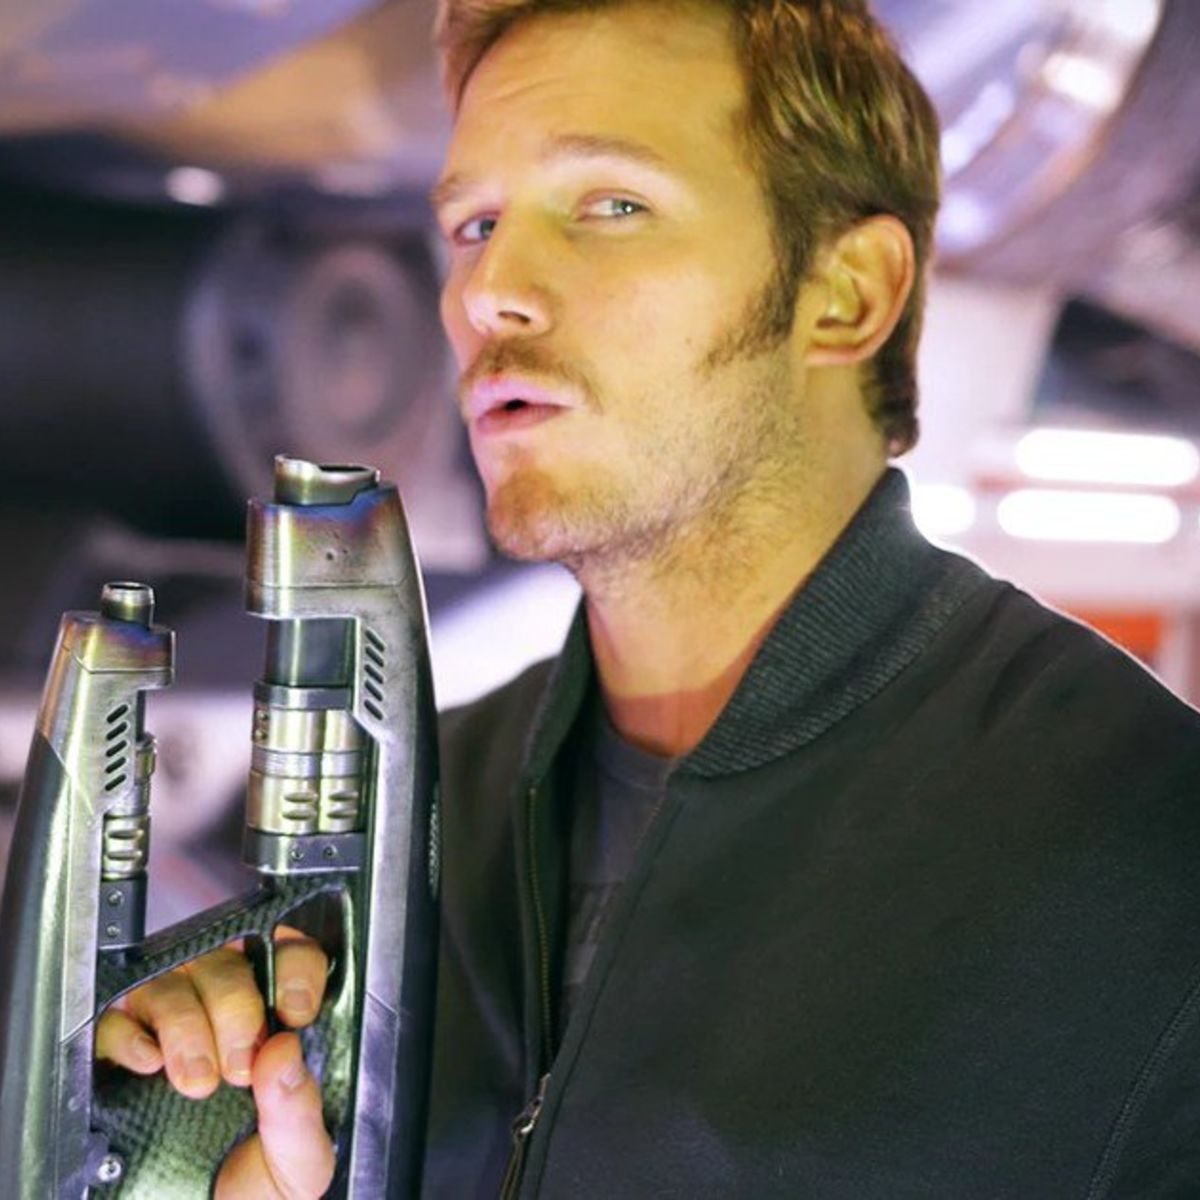 chris-pratt-gotg-2-set-video.jpg